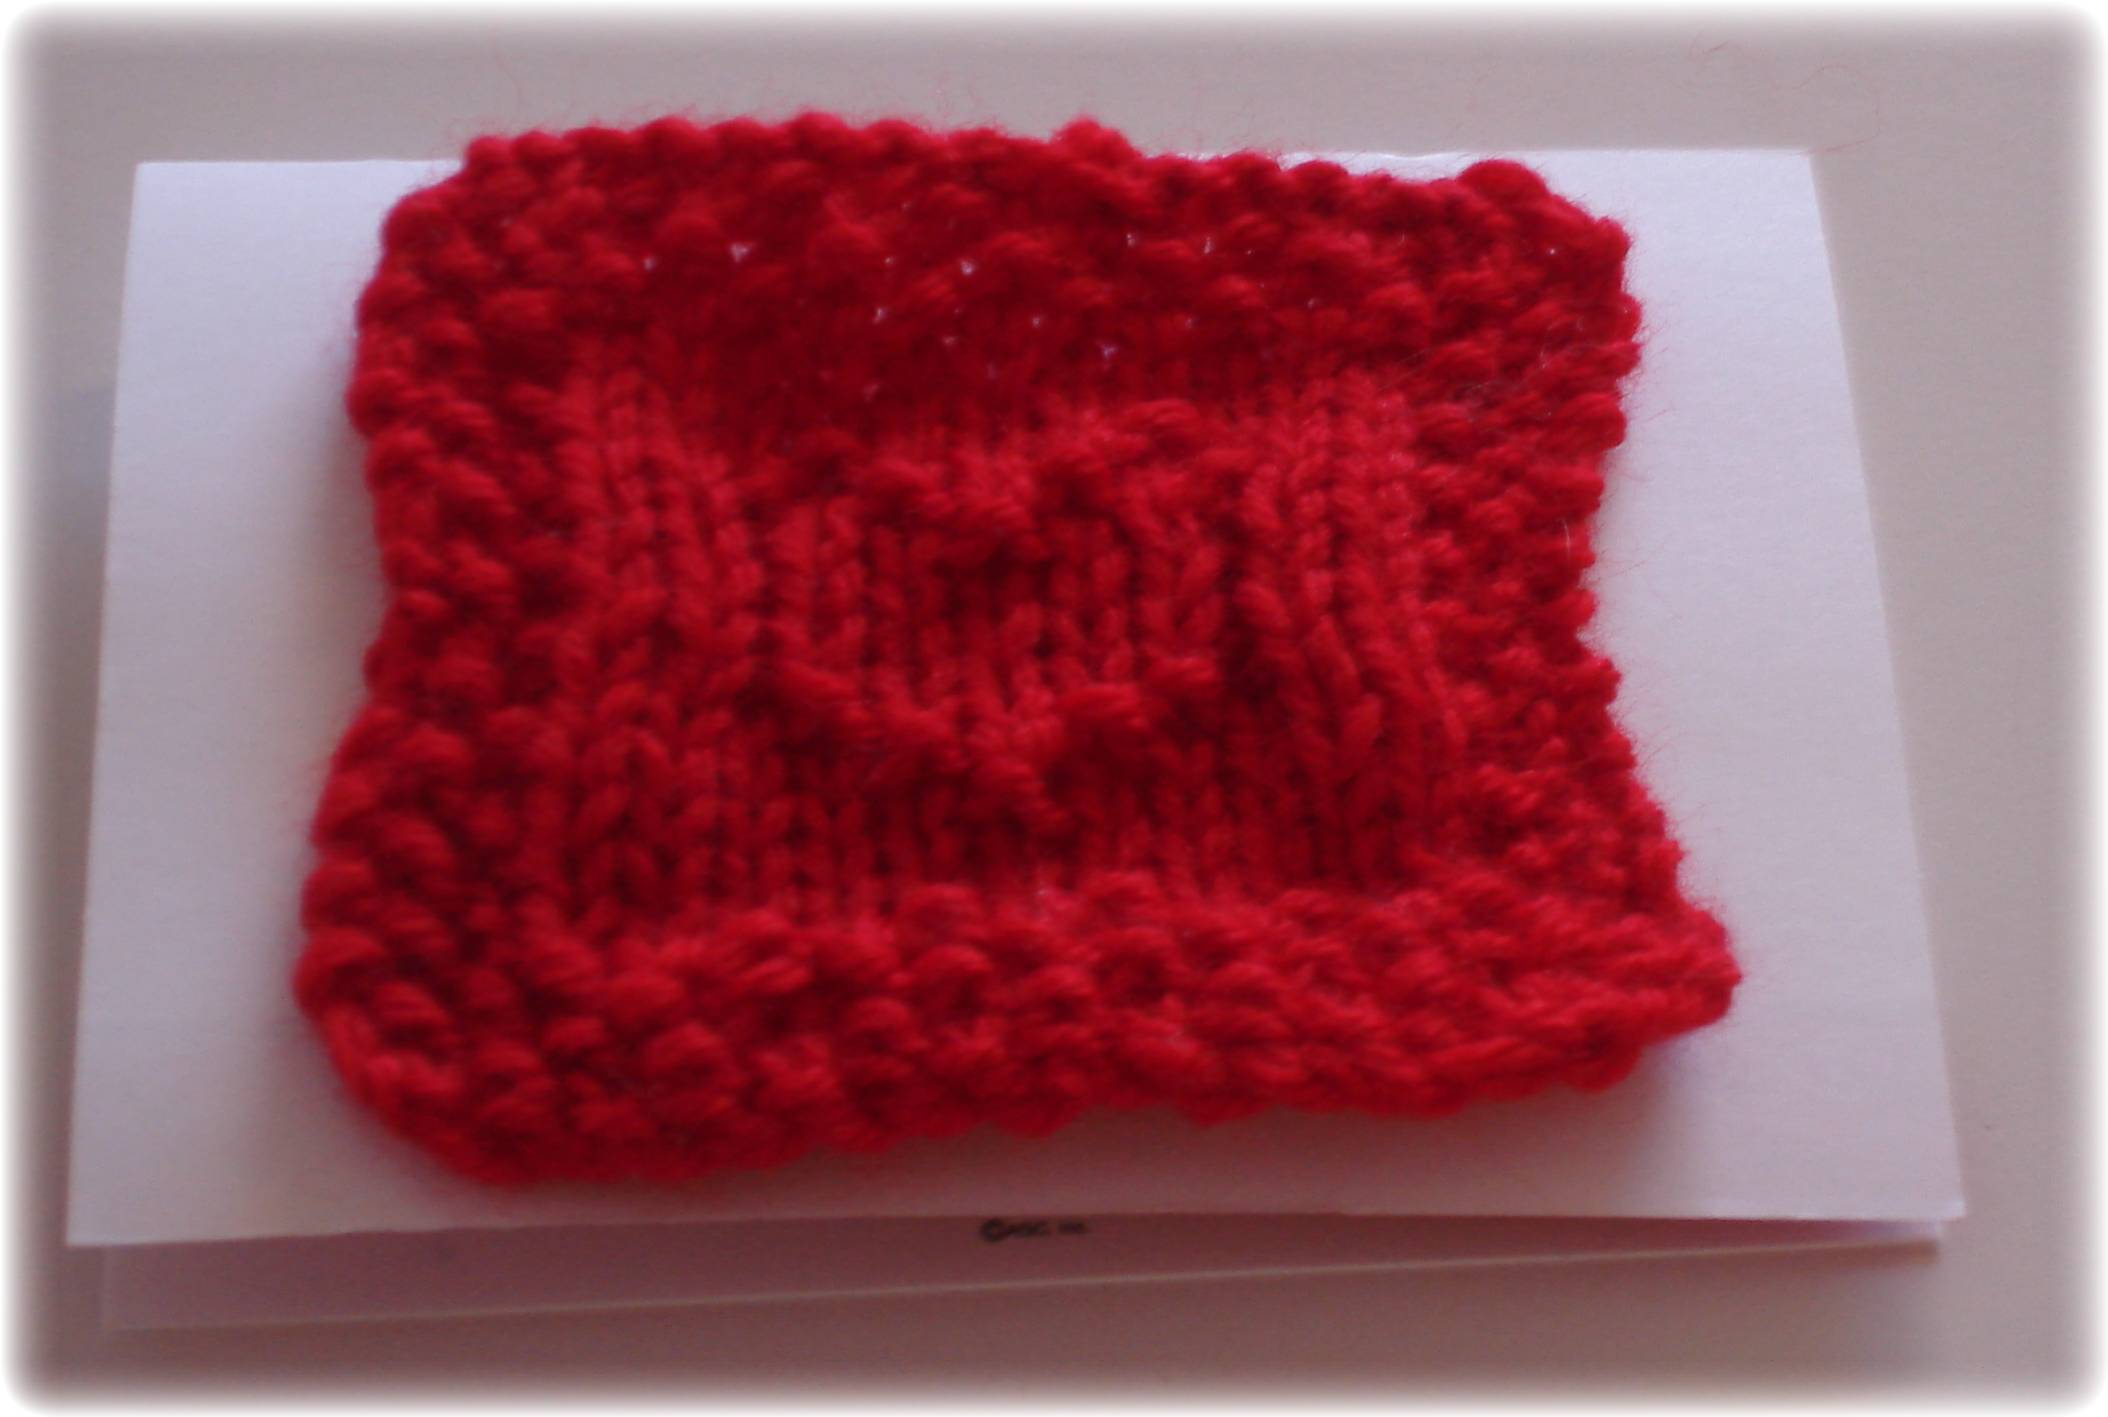 Heart Shaped Dishcloth Knitting Pattern Knit A Heart In 15 Minutes For Valentines Day